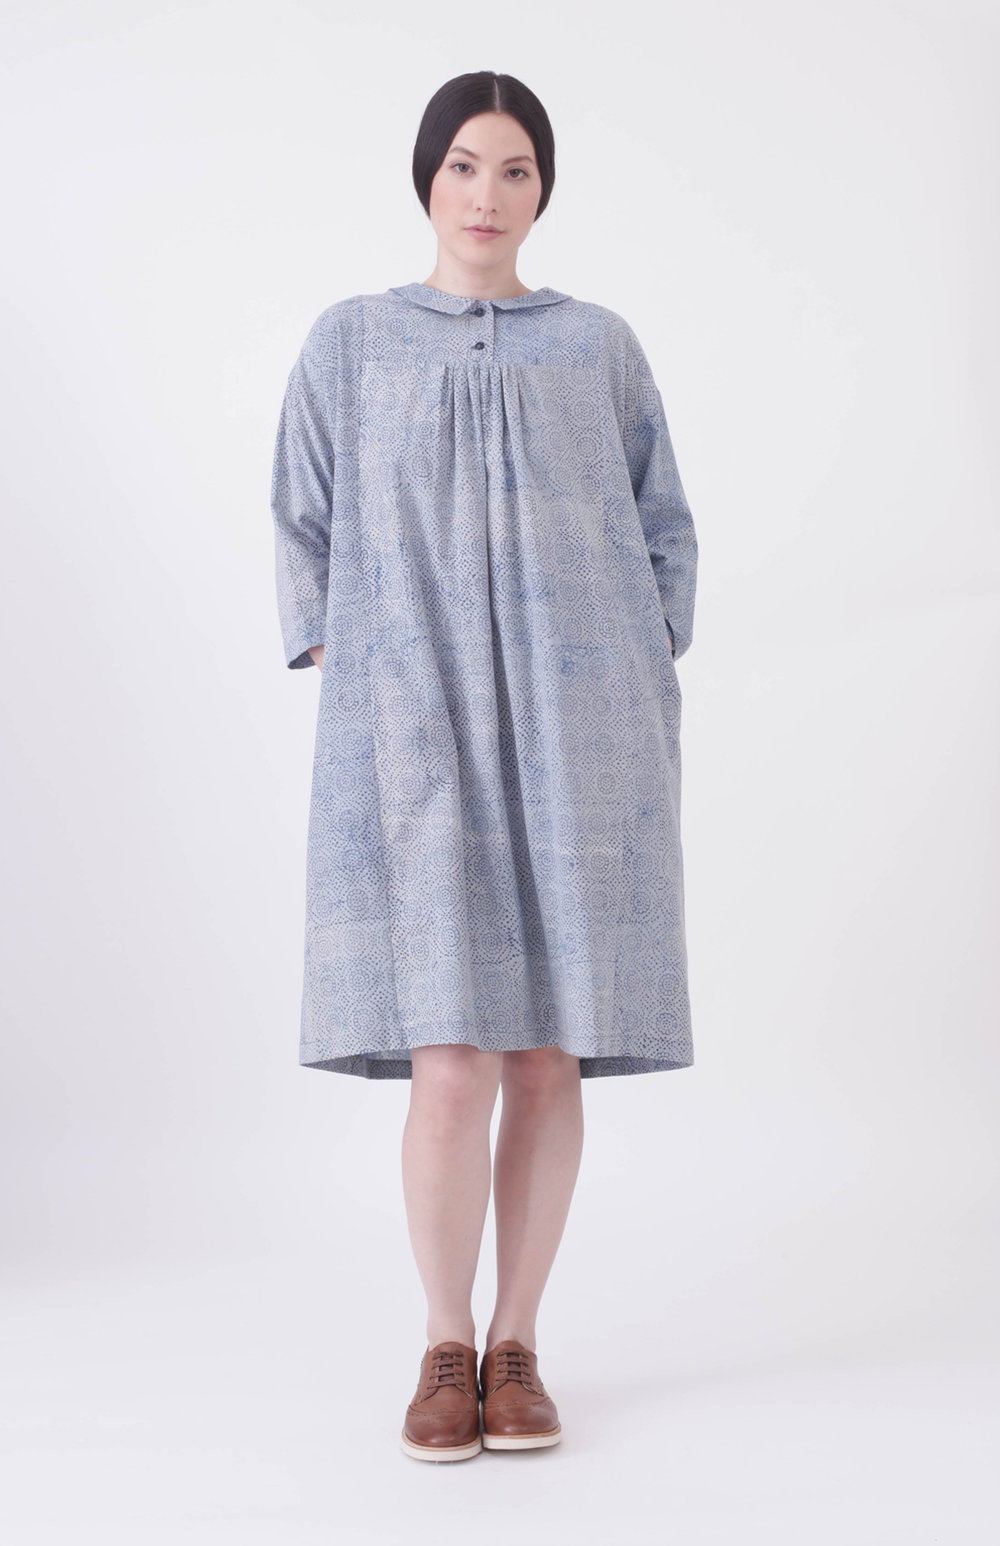 Block print dress dress - 100% Cotton